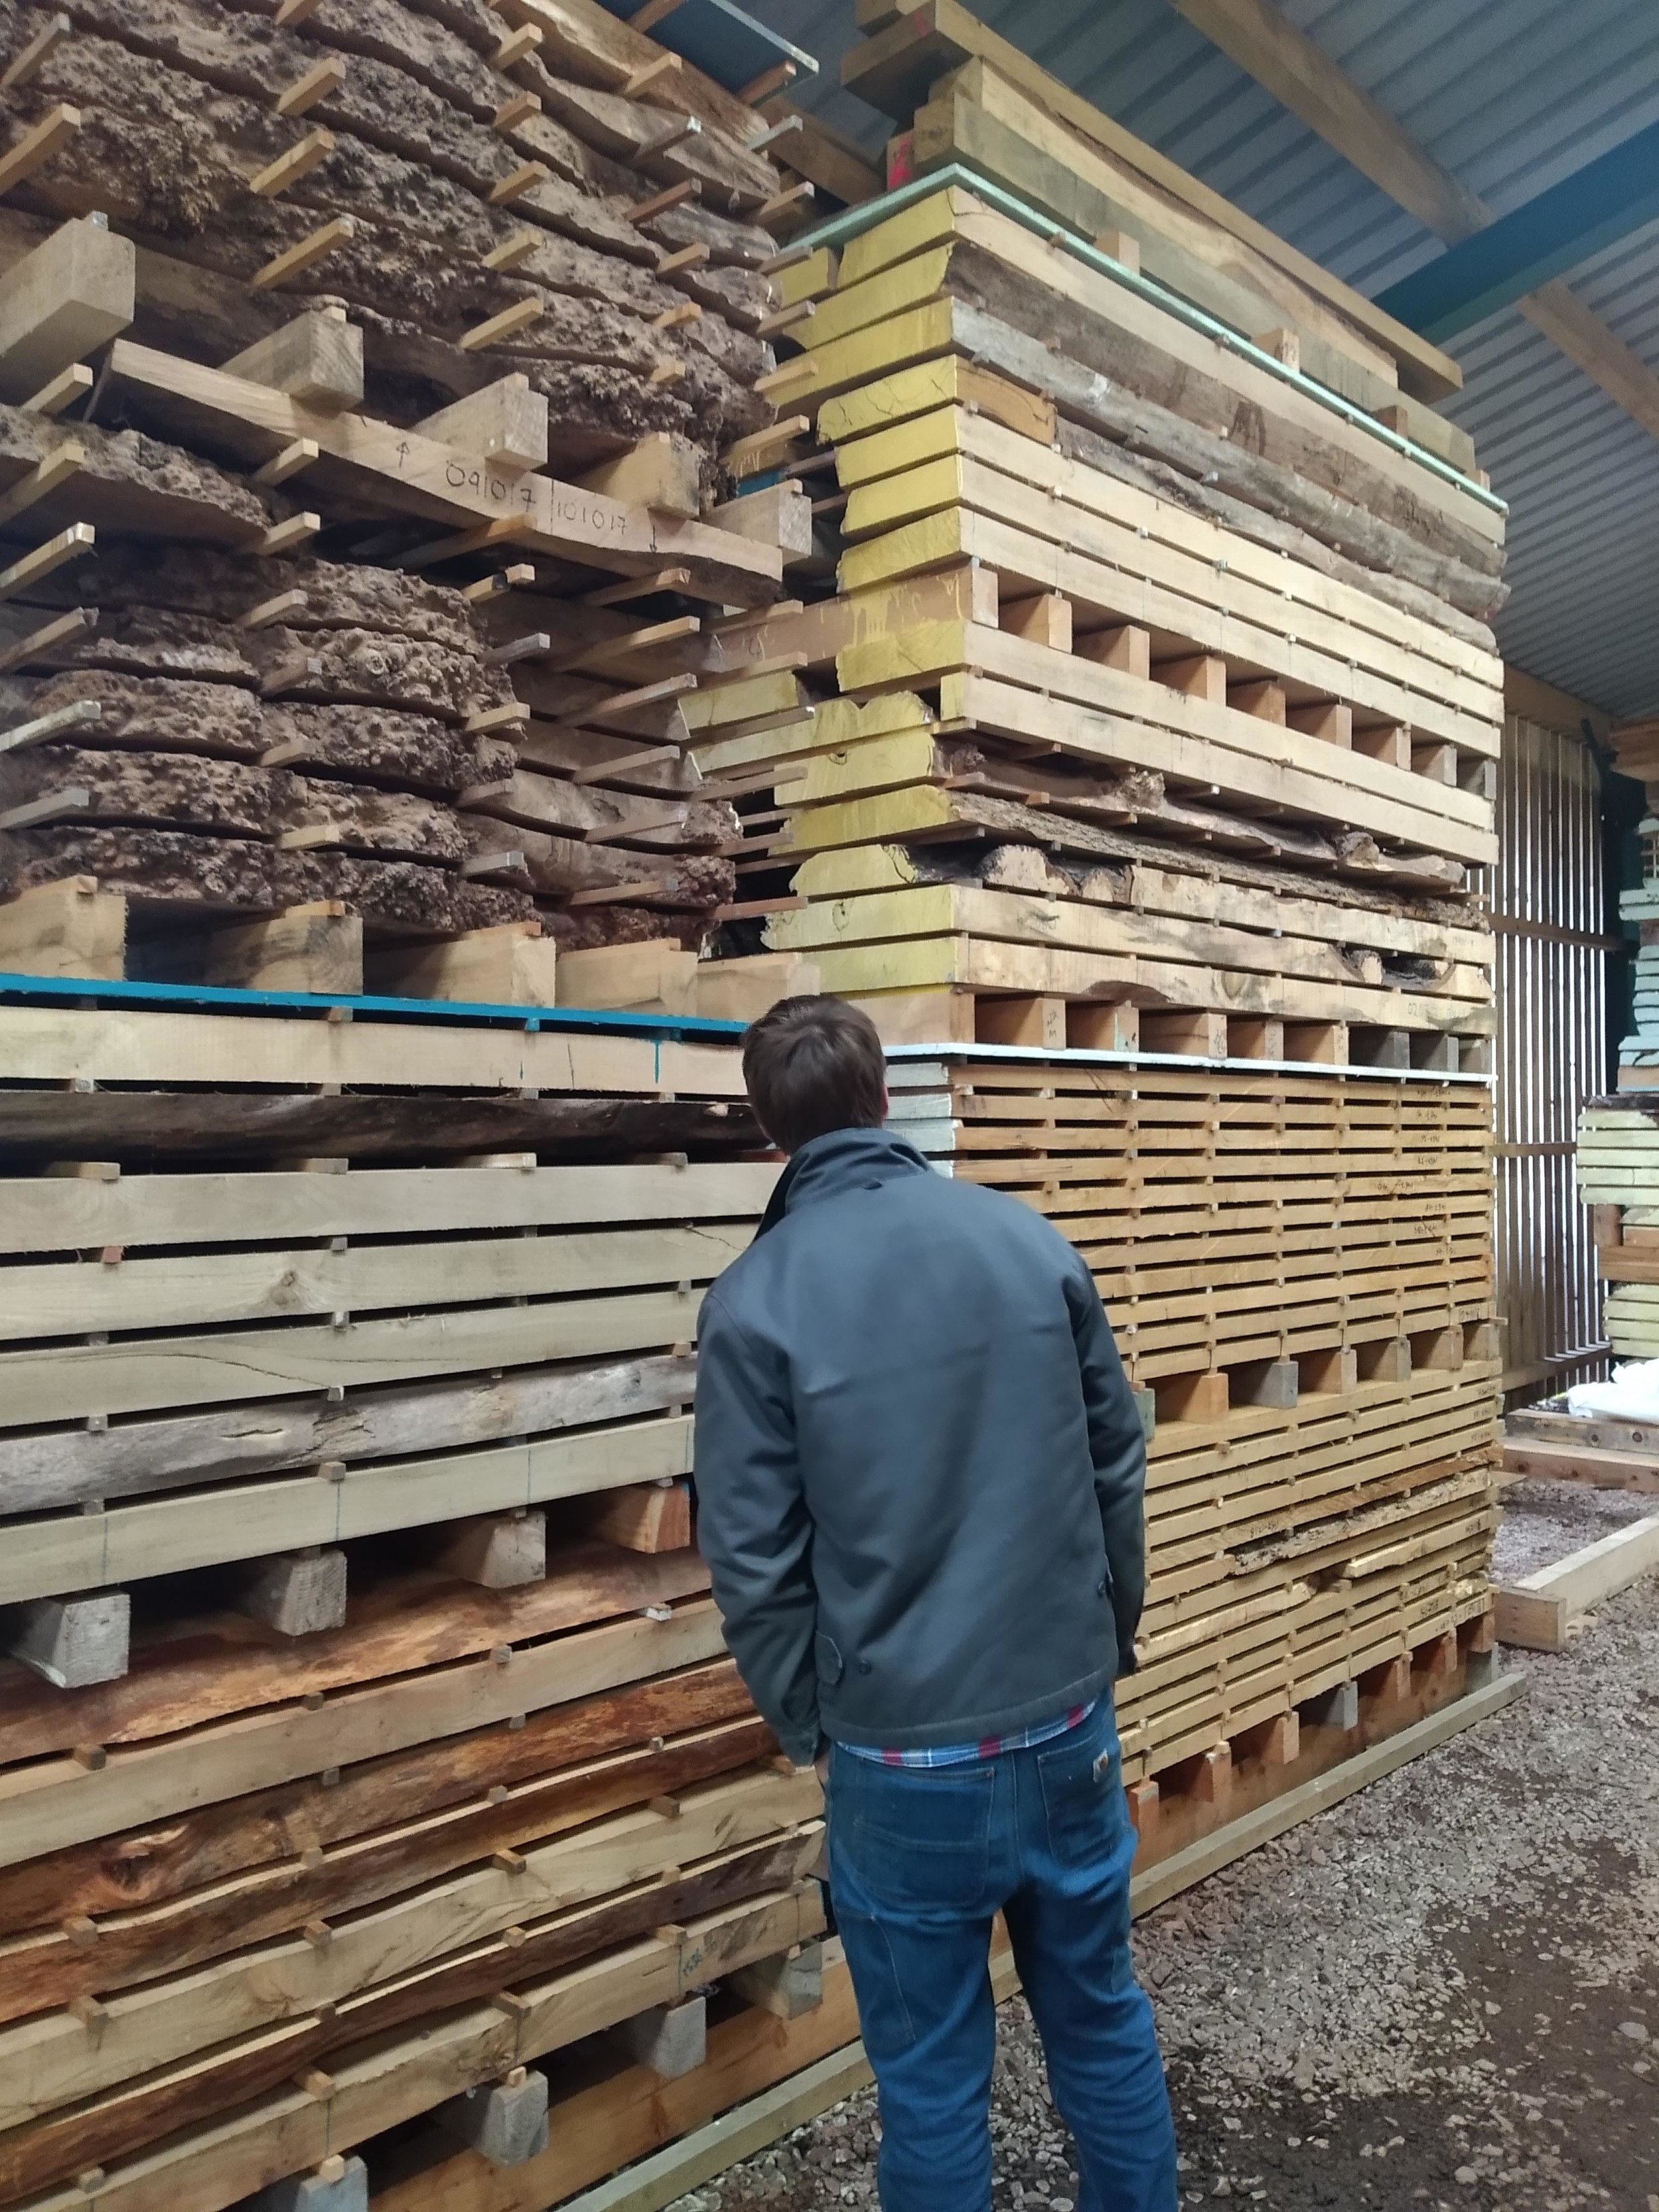 Scottish furniture designer maker Namon Gaston selecting timber for bespoke commission design